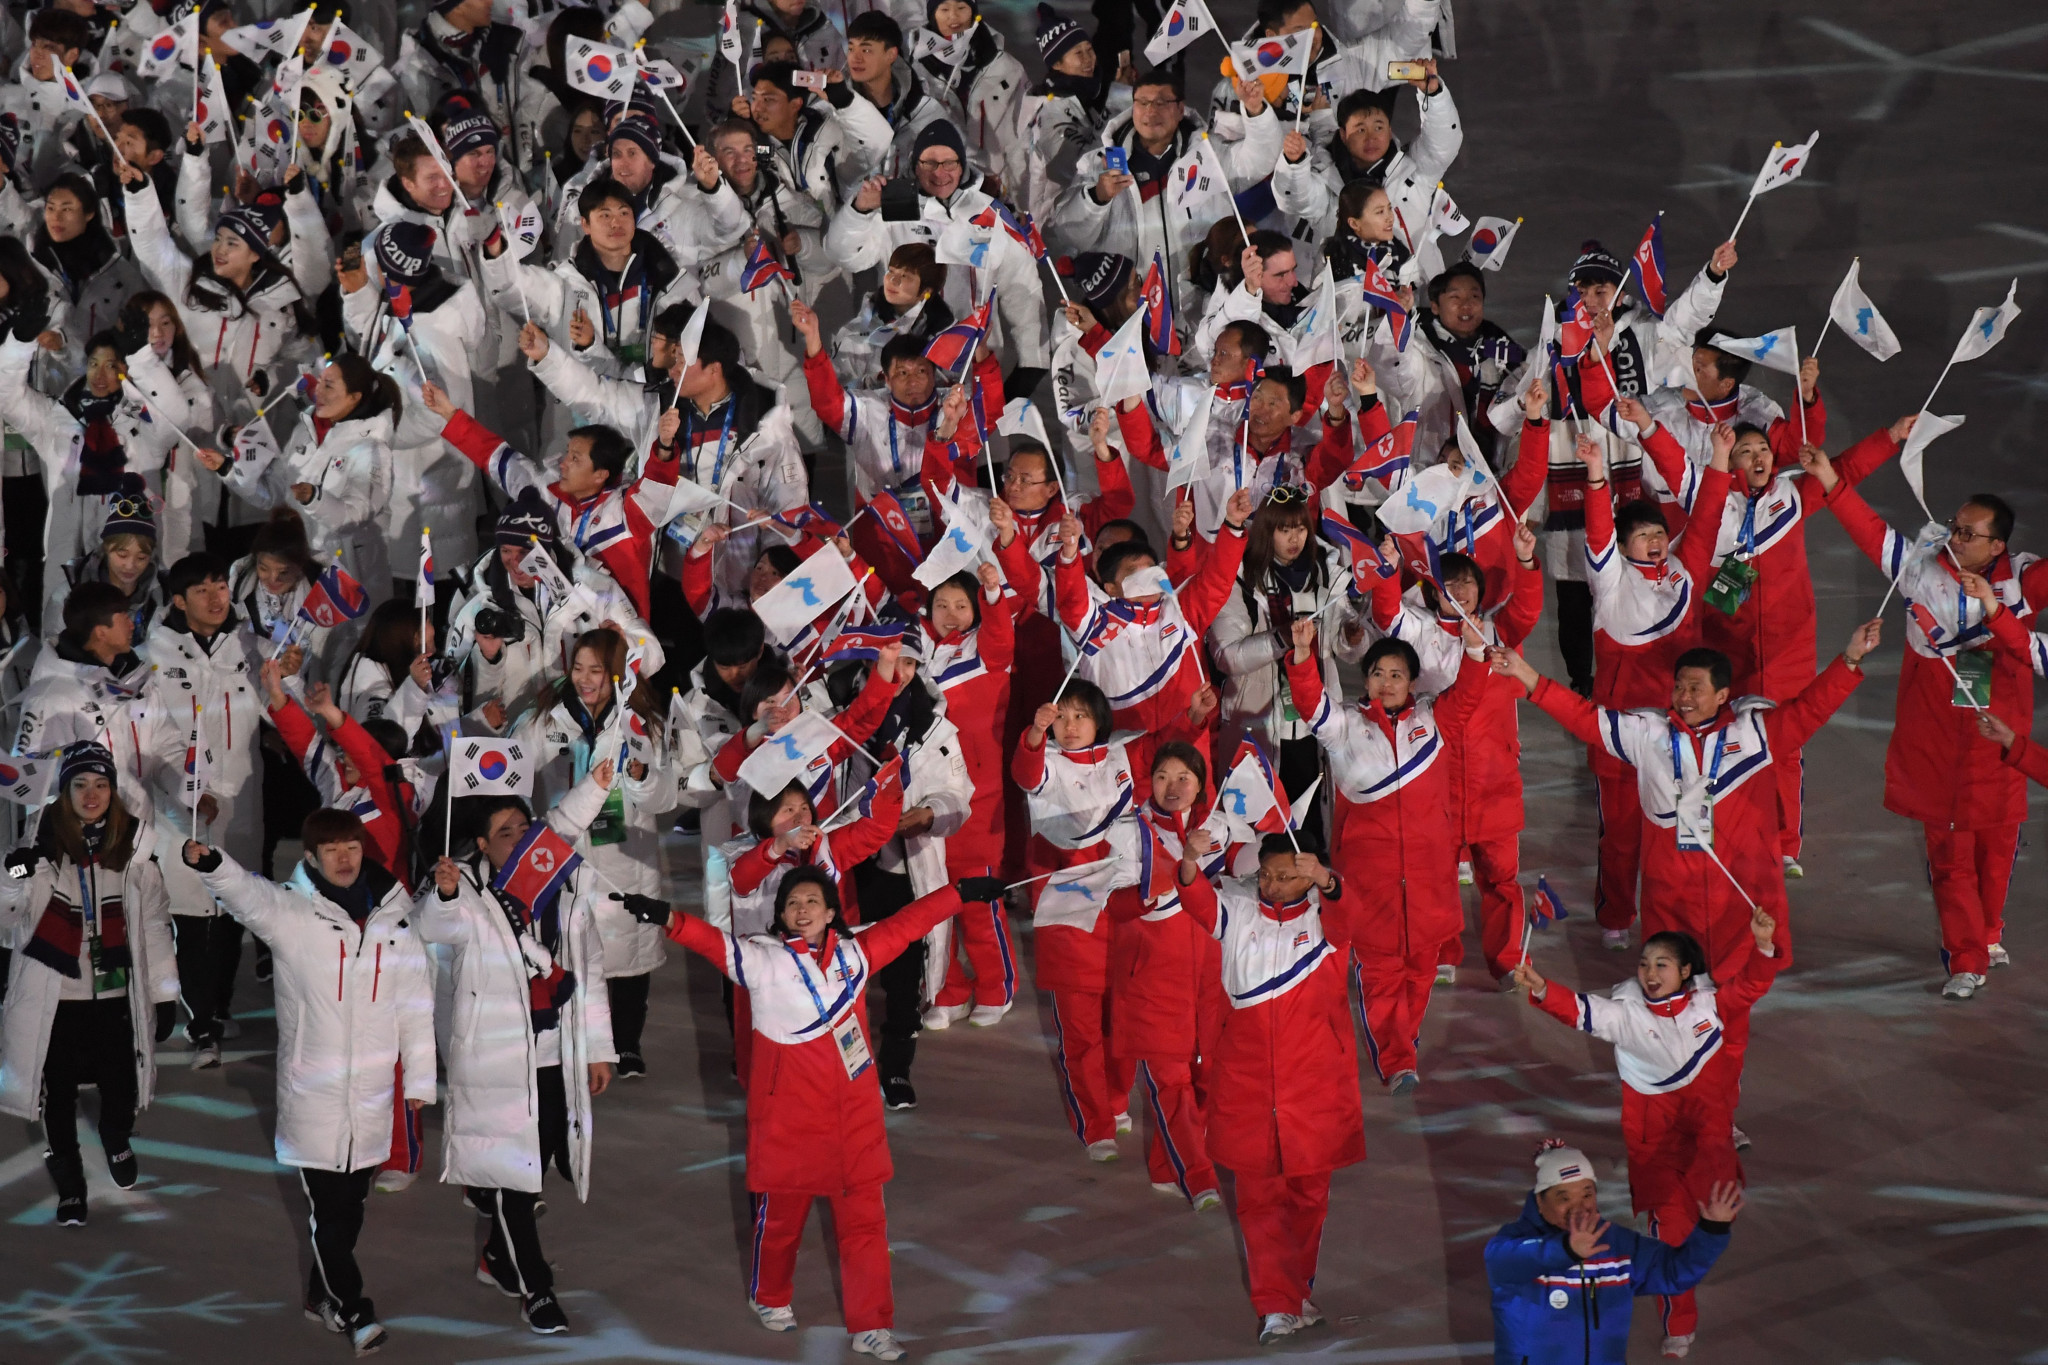 Discussions over a 2032 Korean bid and unified teams at Tokyo 2020 took place in Lausanne ©Getty Images